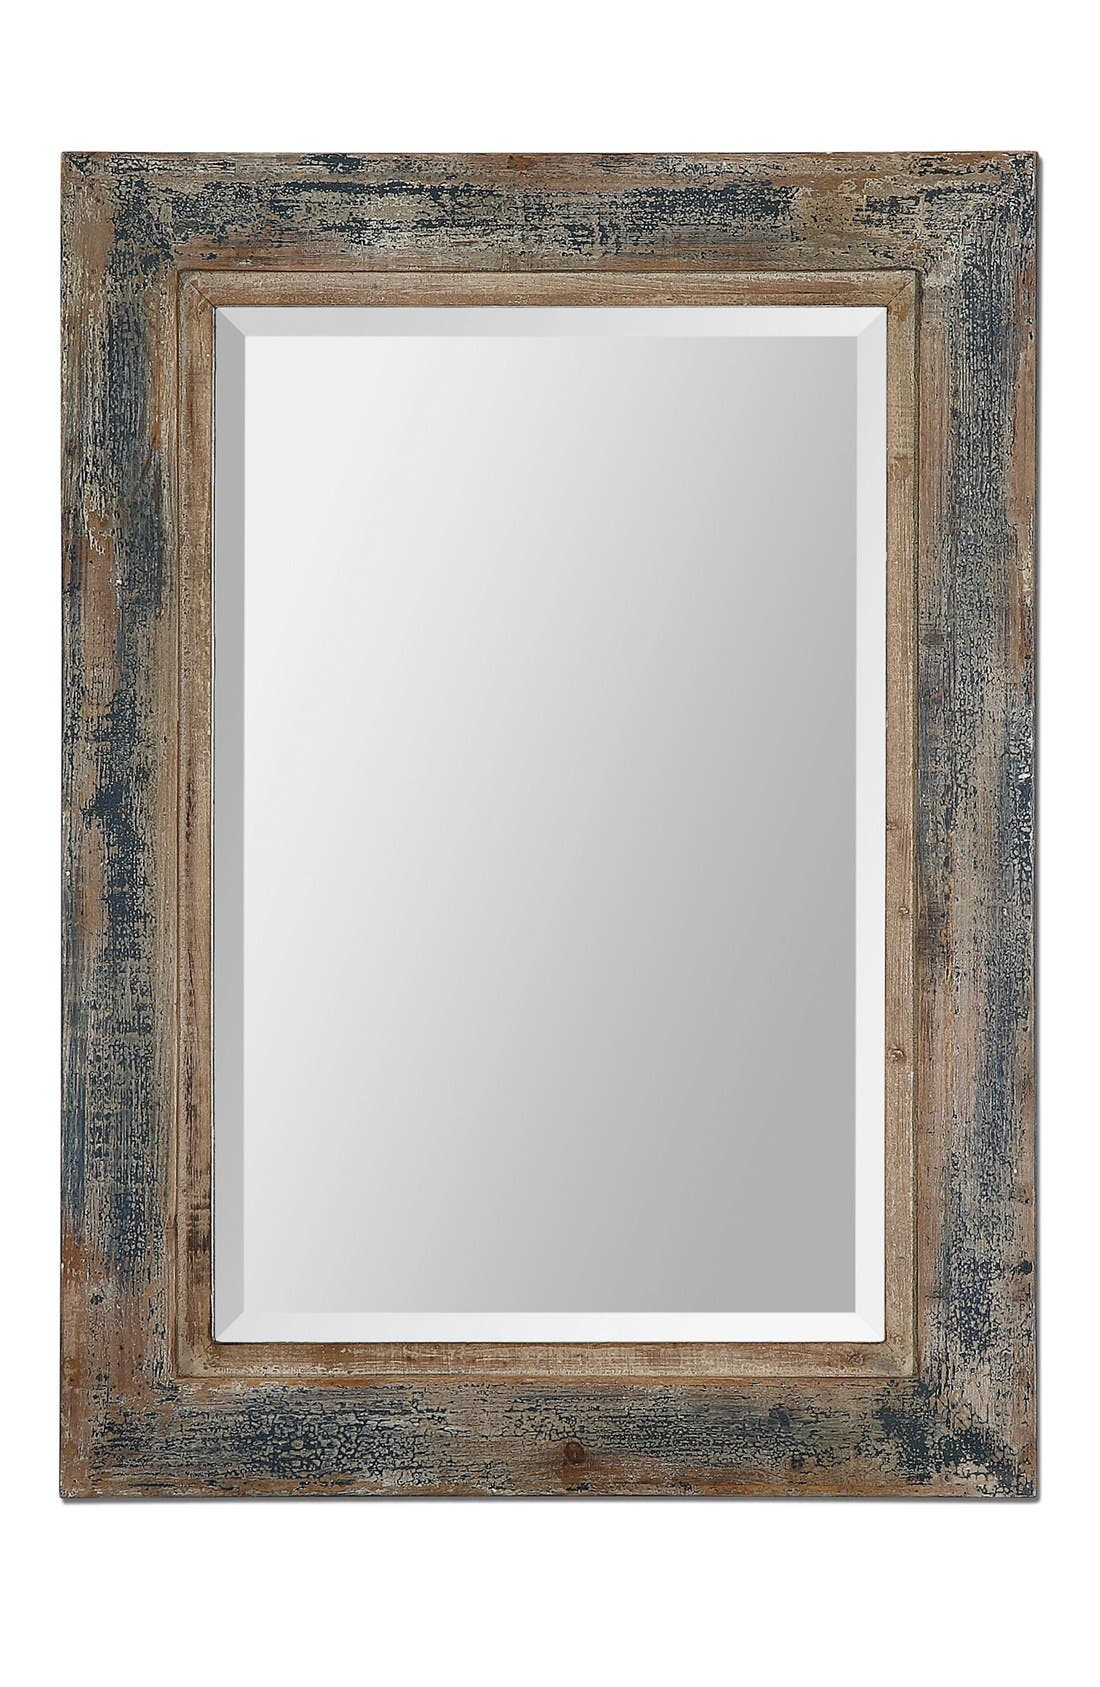 'Bozeman' Distressed Wooden Mirror,                             Main thumbnail 1, color,